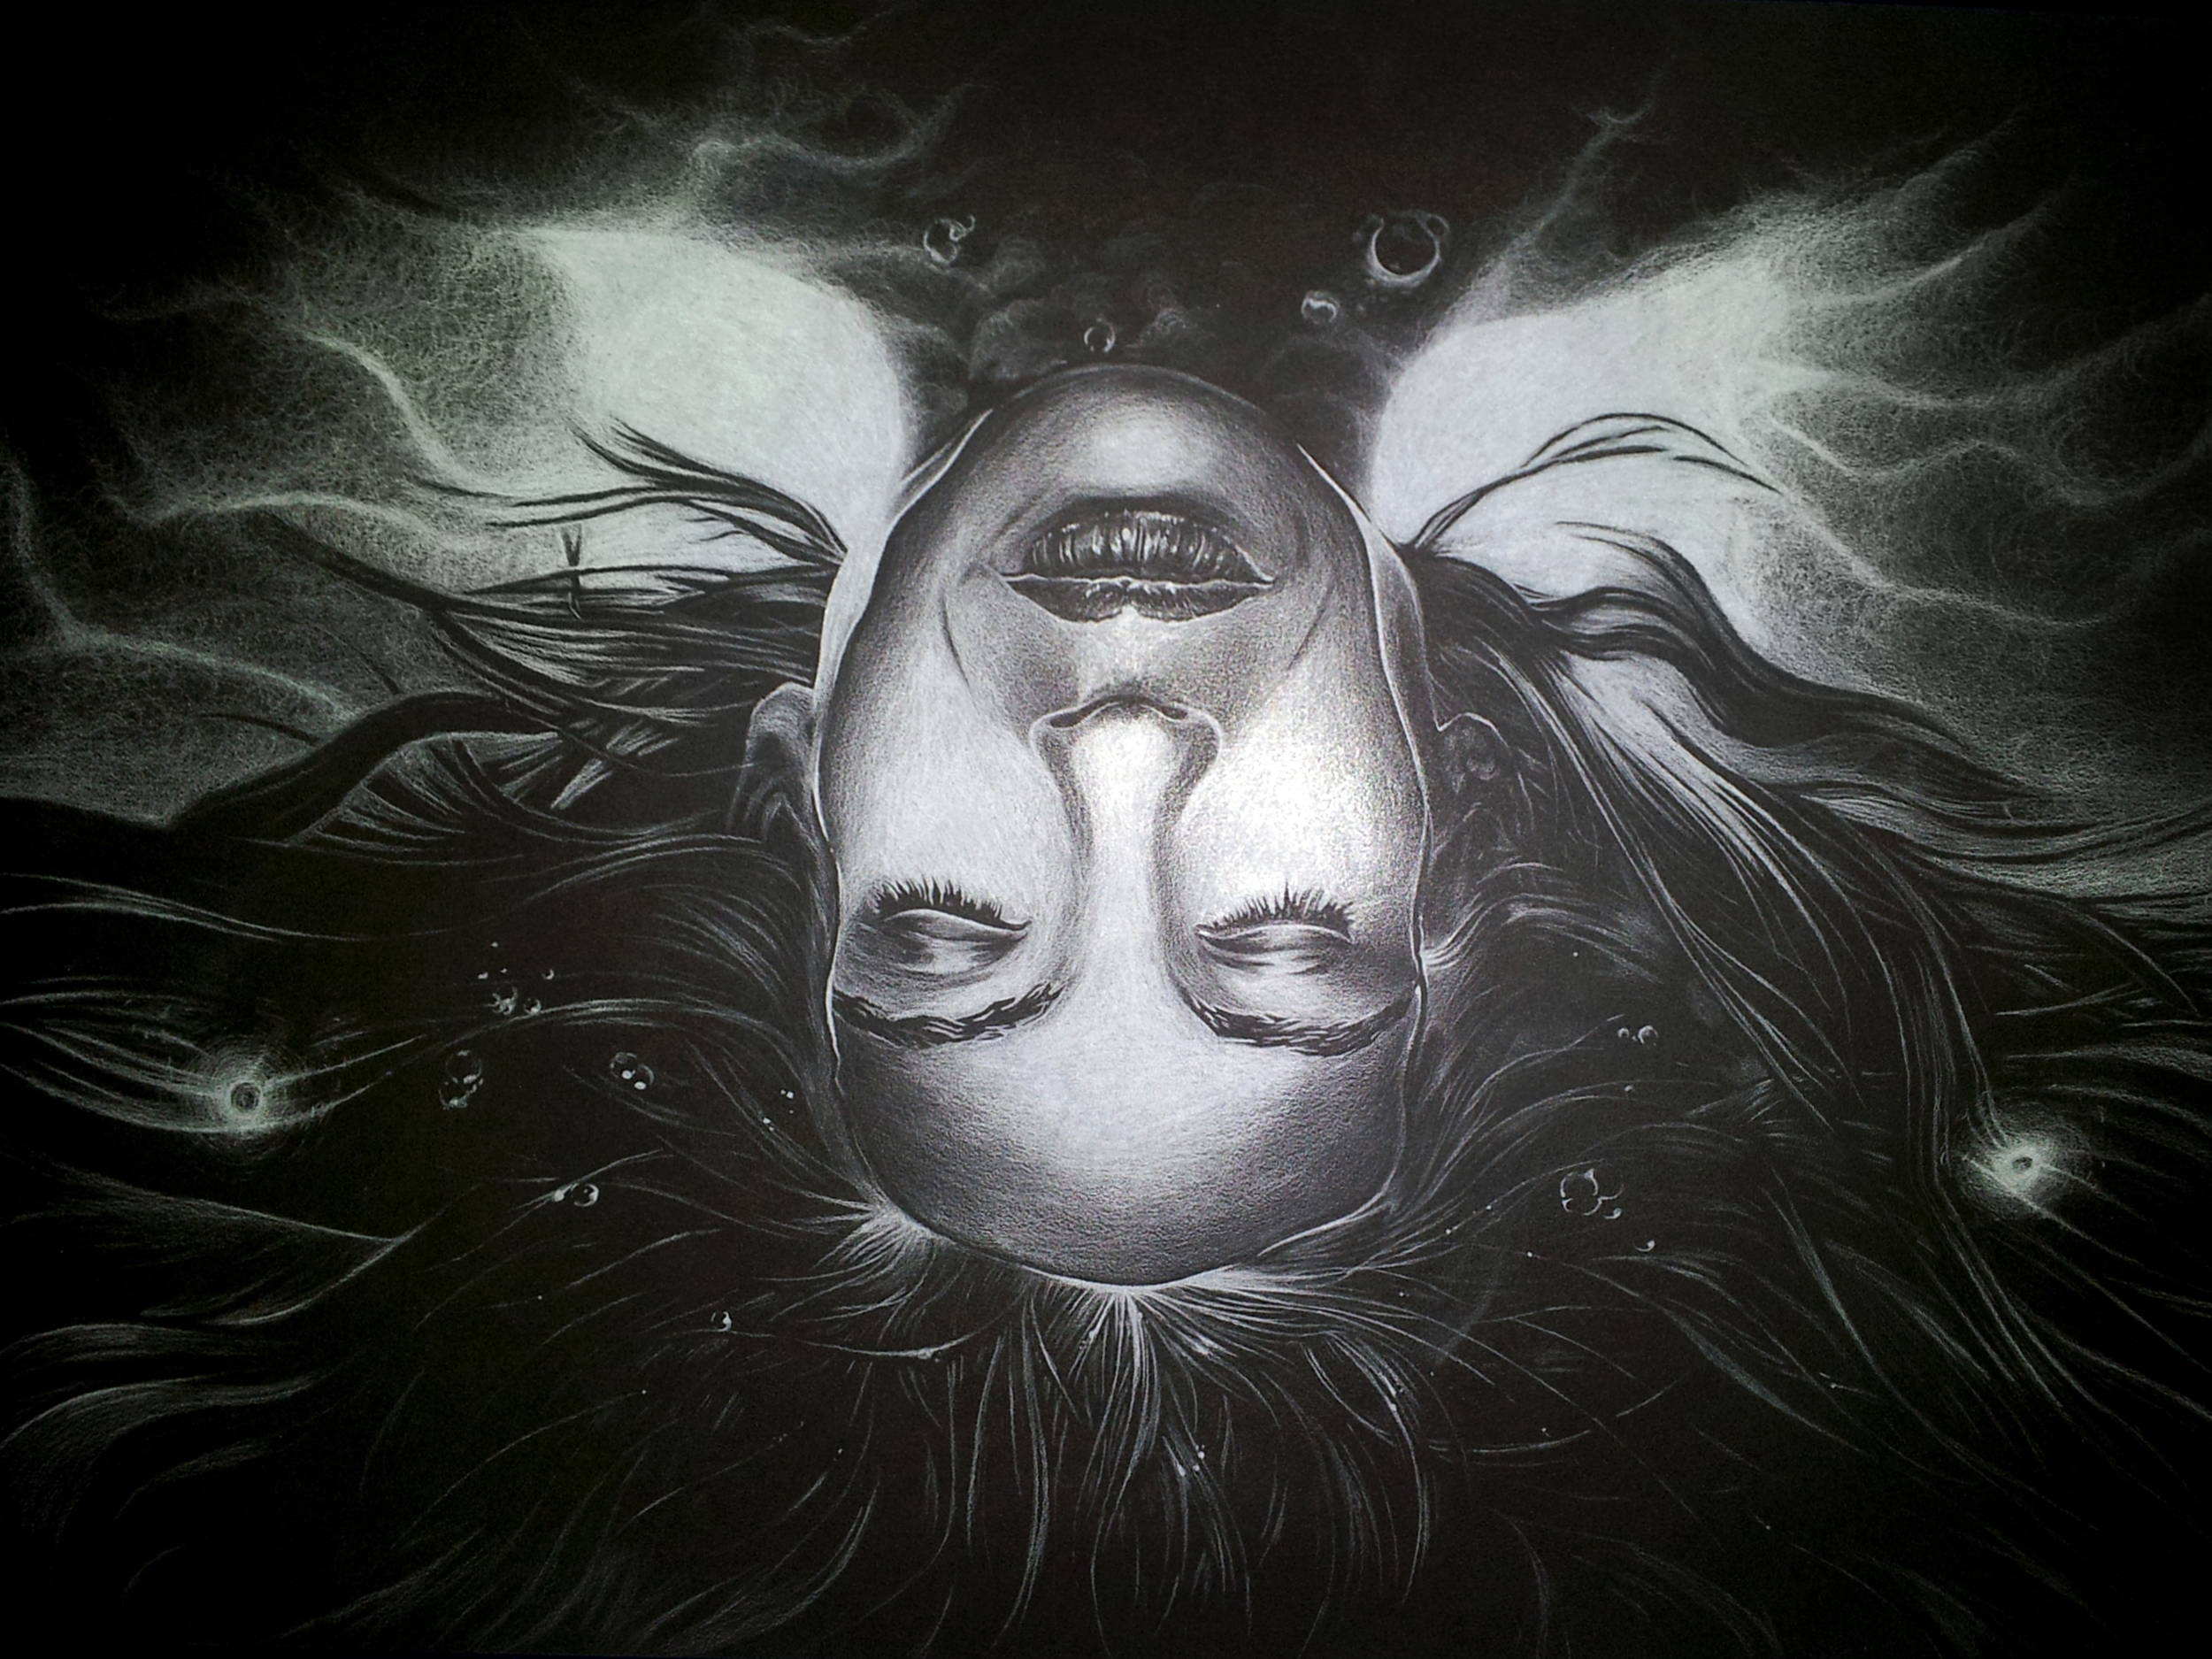 ...a white colored pencil drawing of Olivia Dunham from the series Fringe...